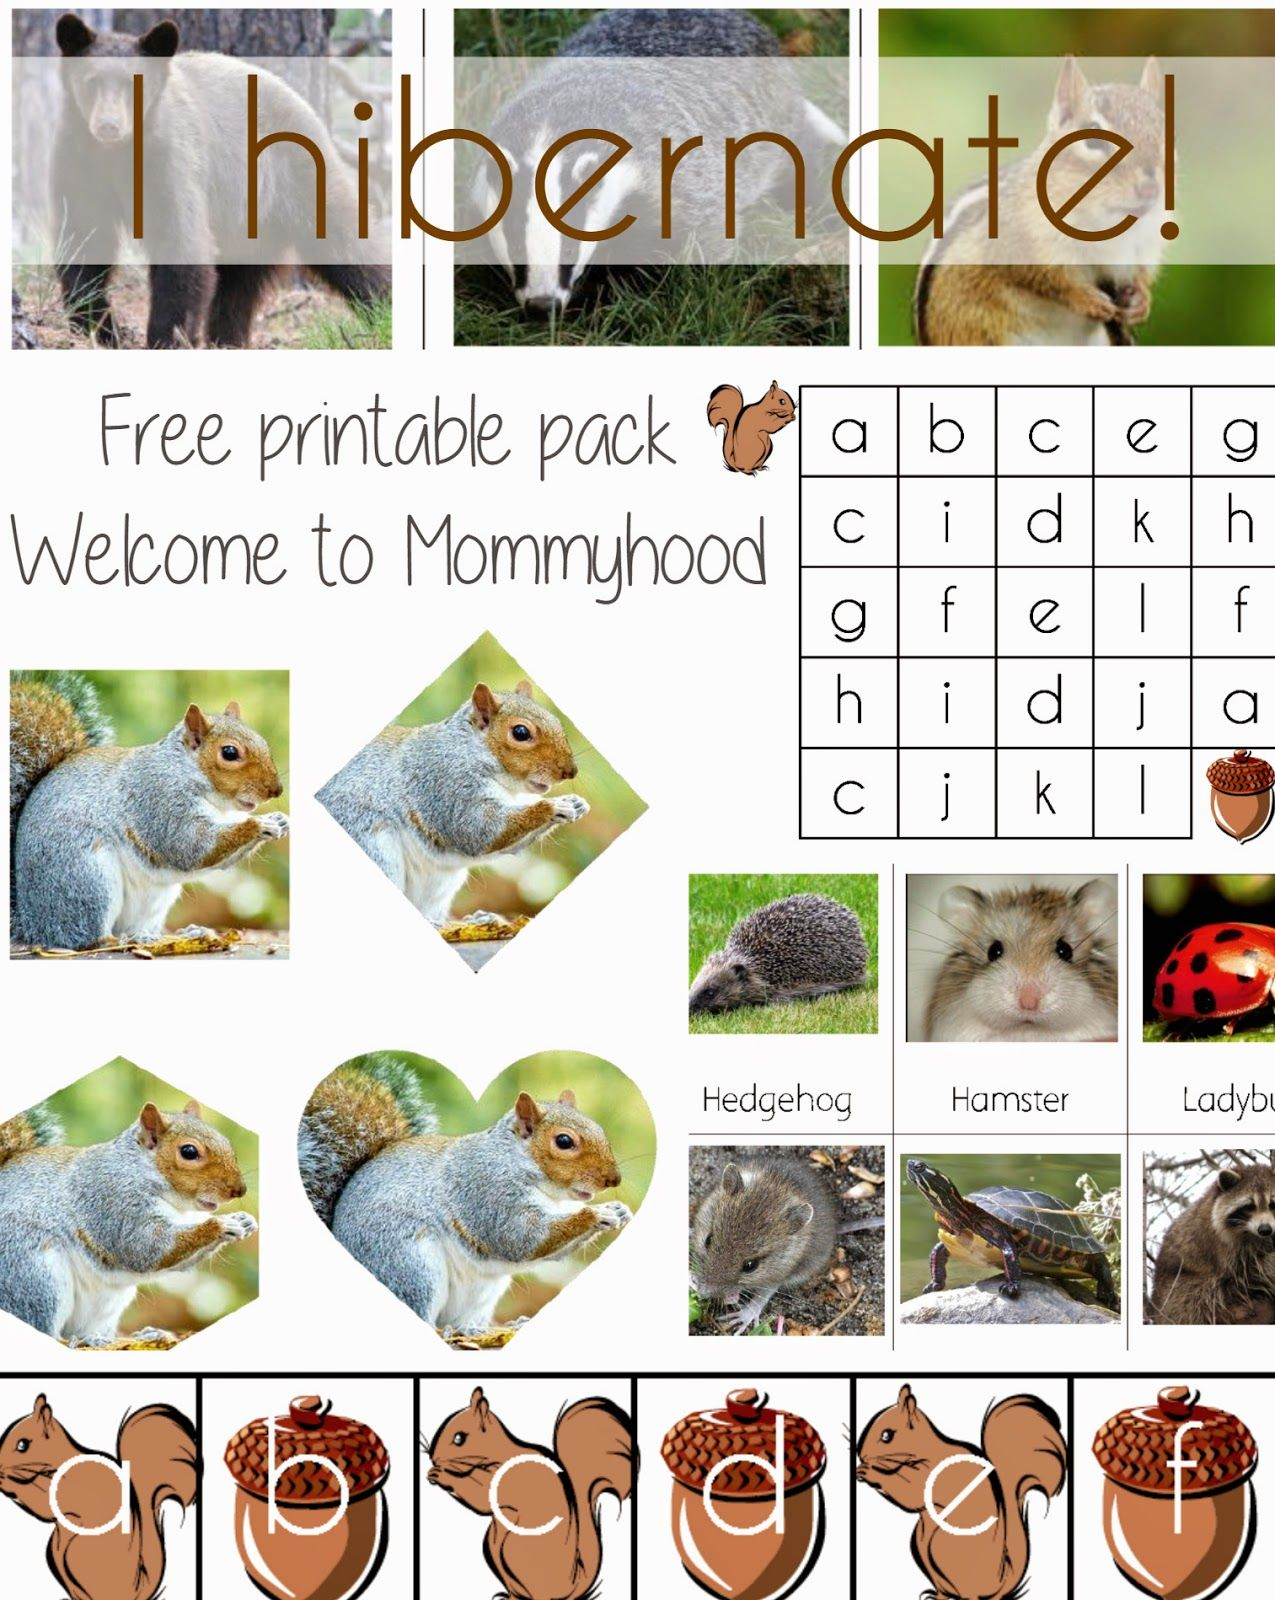 I Hibernate Free Printable Pack From Welcome To Mommyhood